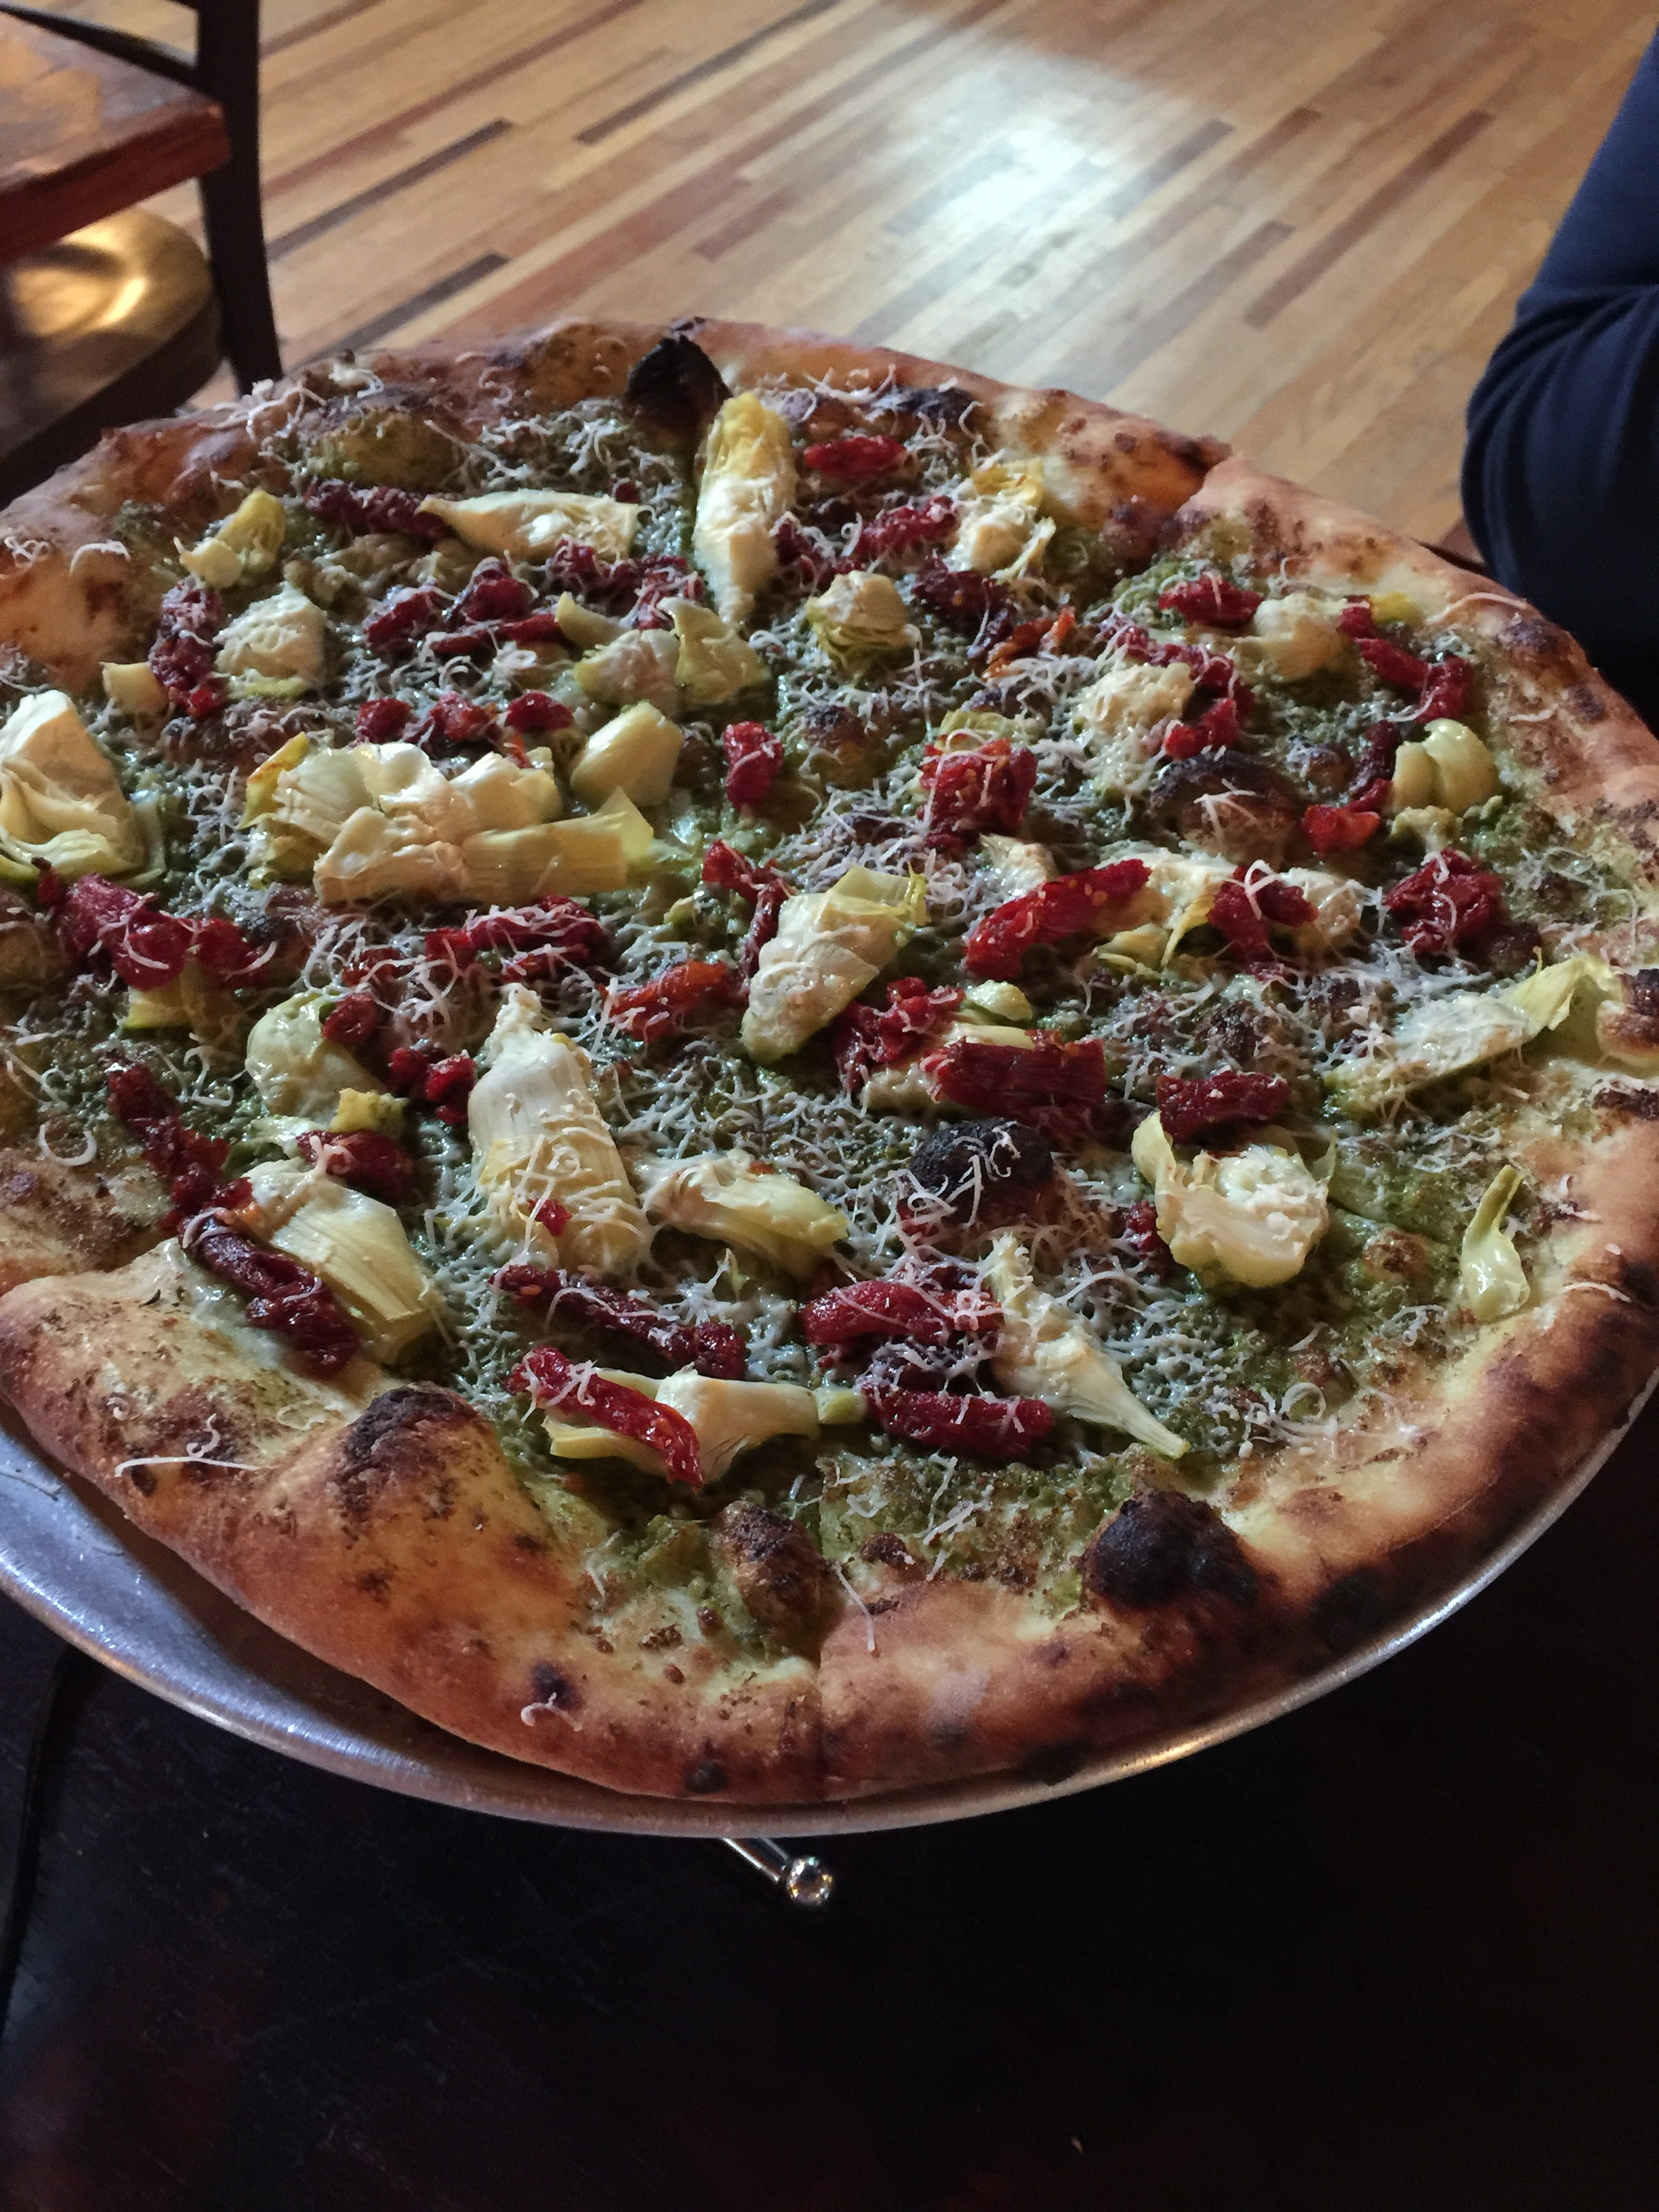 Elkin Creek's Pesto Pizza